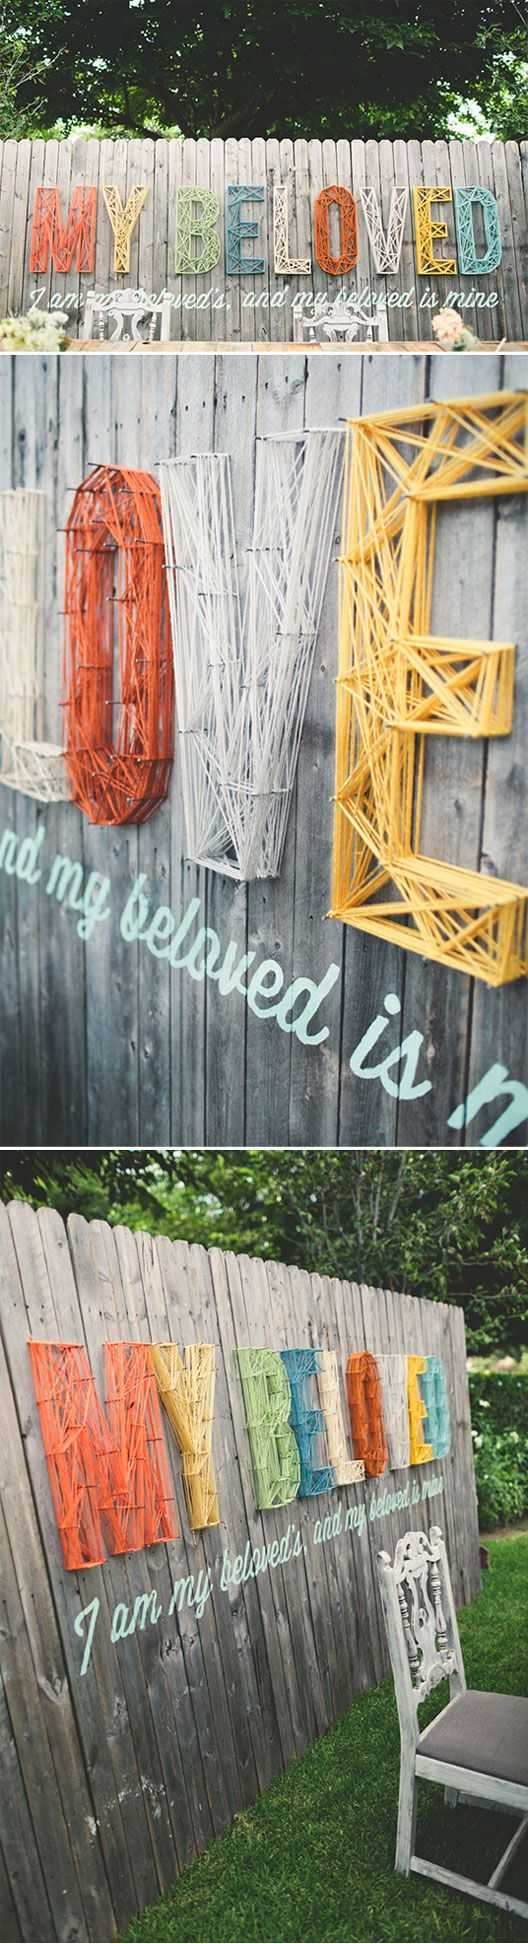 Diy garden wall art - 25 Incredible Diy Garden Fence Wall Art Ideas